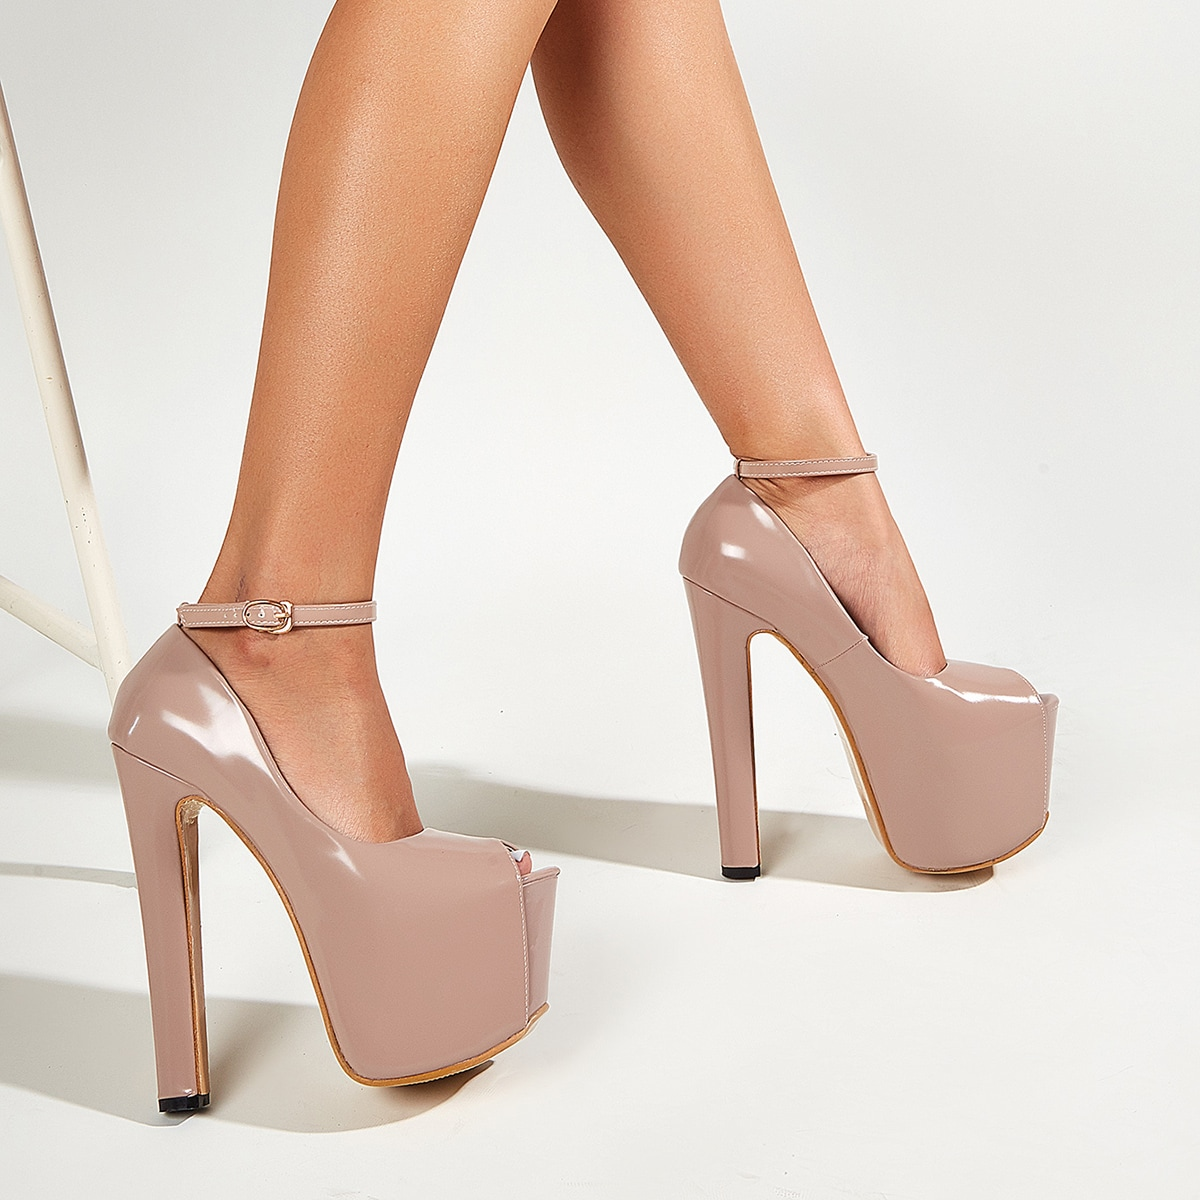 SHEIN / Peep Toe Ultra High Heeled Ankle Strap Platform Pumps